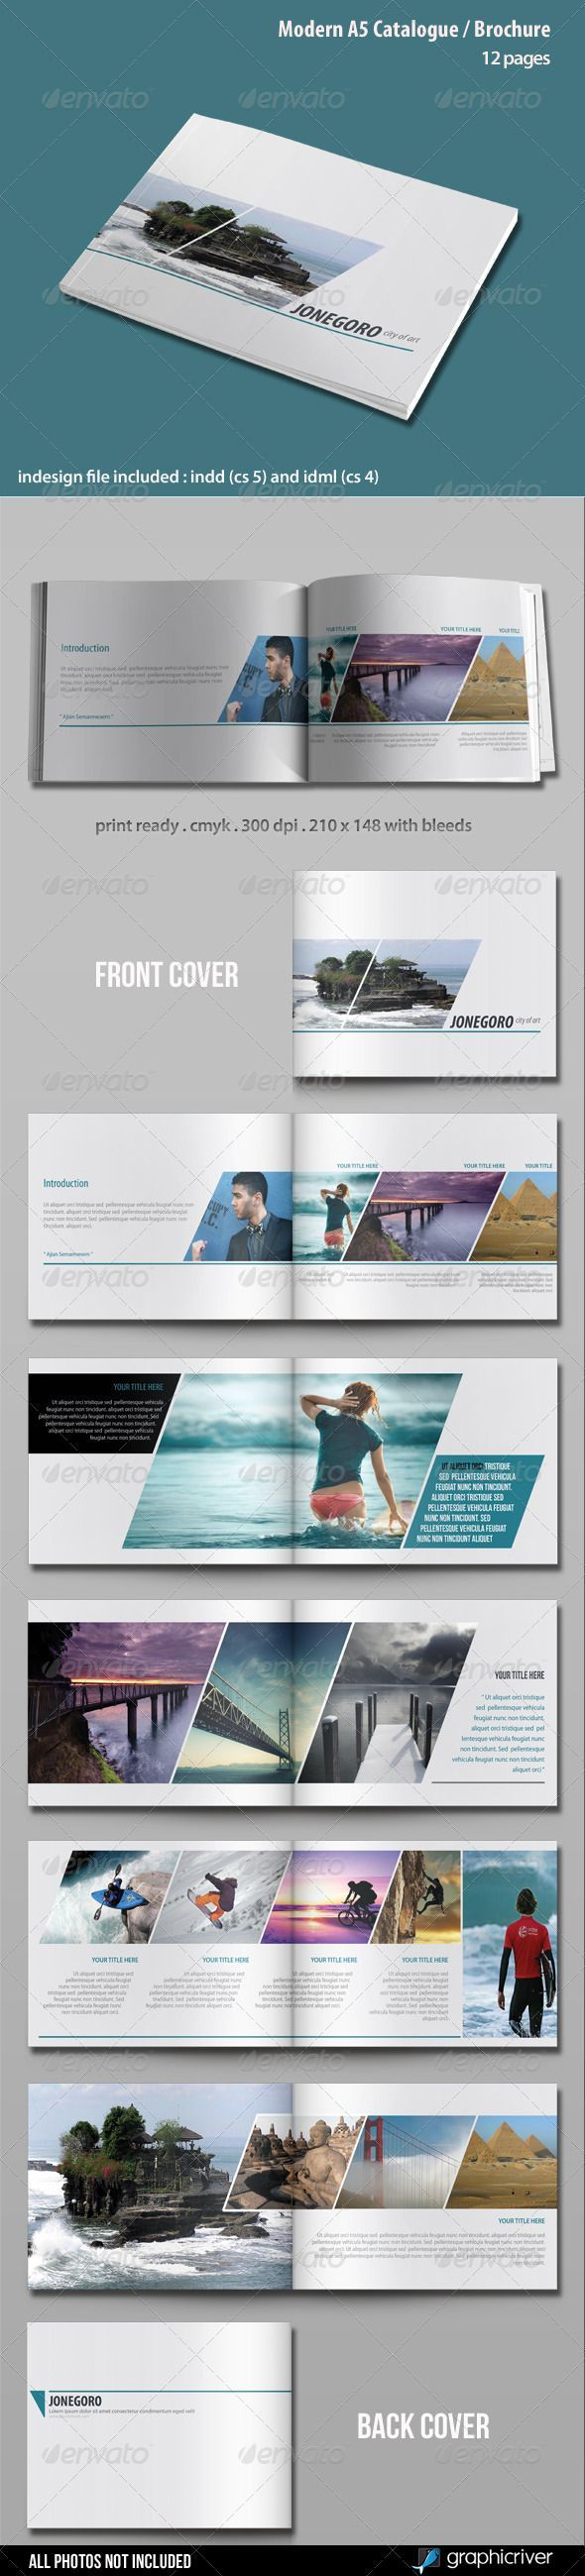 Modern A5 Catalogue / Brochure - GraphicRiver Item for Sale: